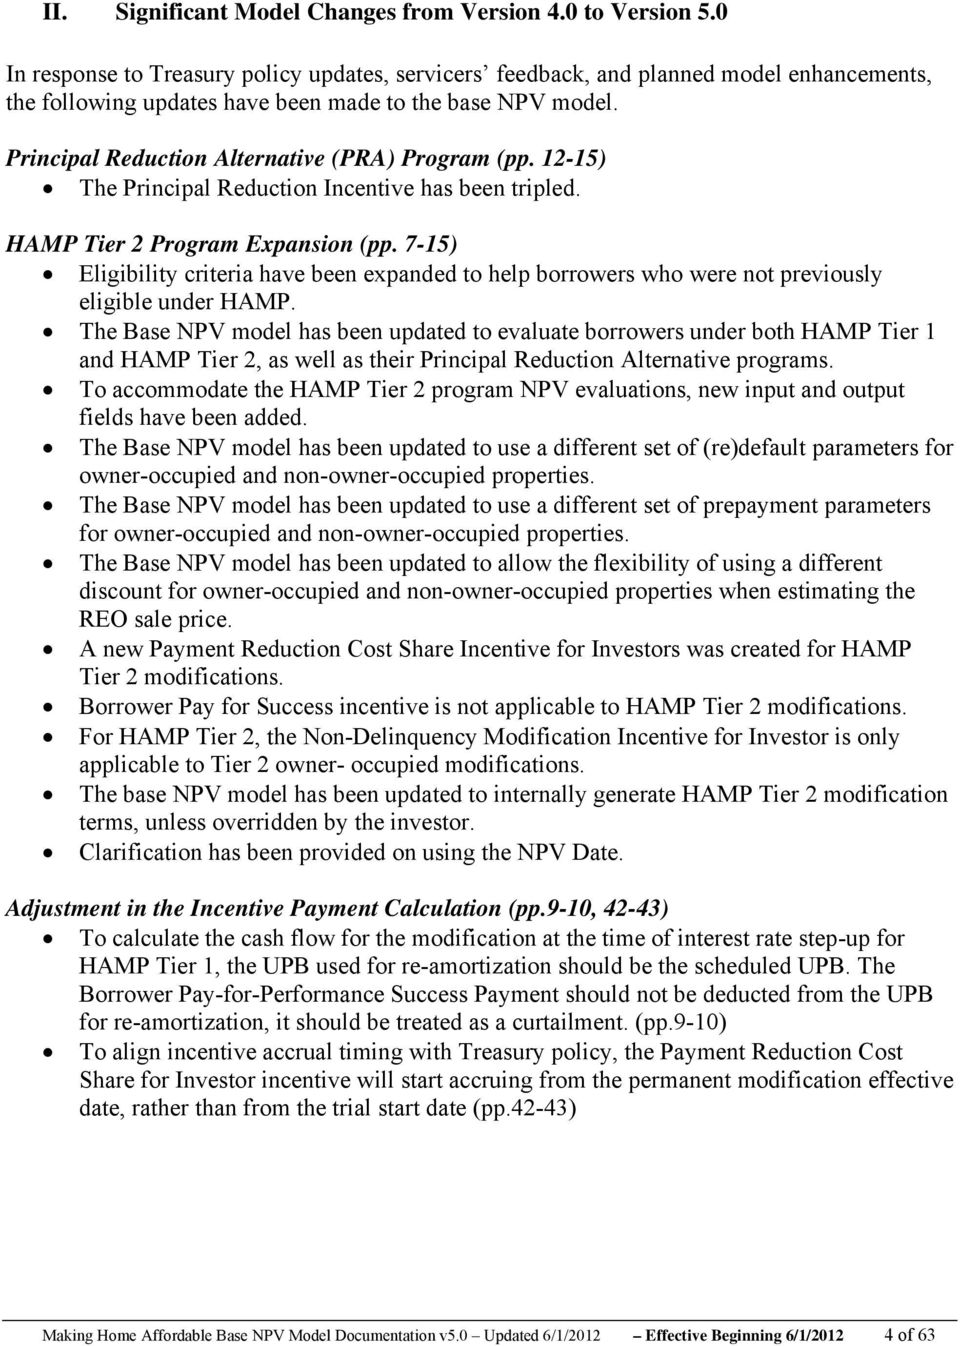 Principal Reduction Alternative (PRA) Program (pp. 12-15) The Principal Reduction Incentive has been tripled. HAMP Tier 2 Program Expansion (pp.